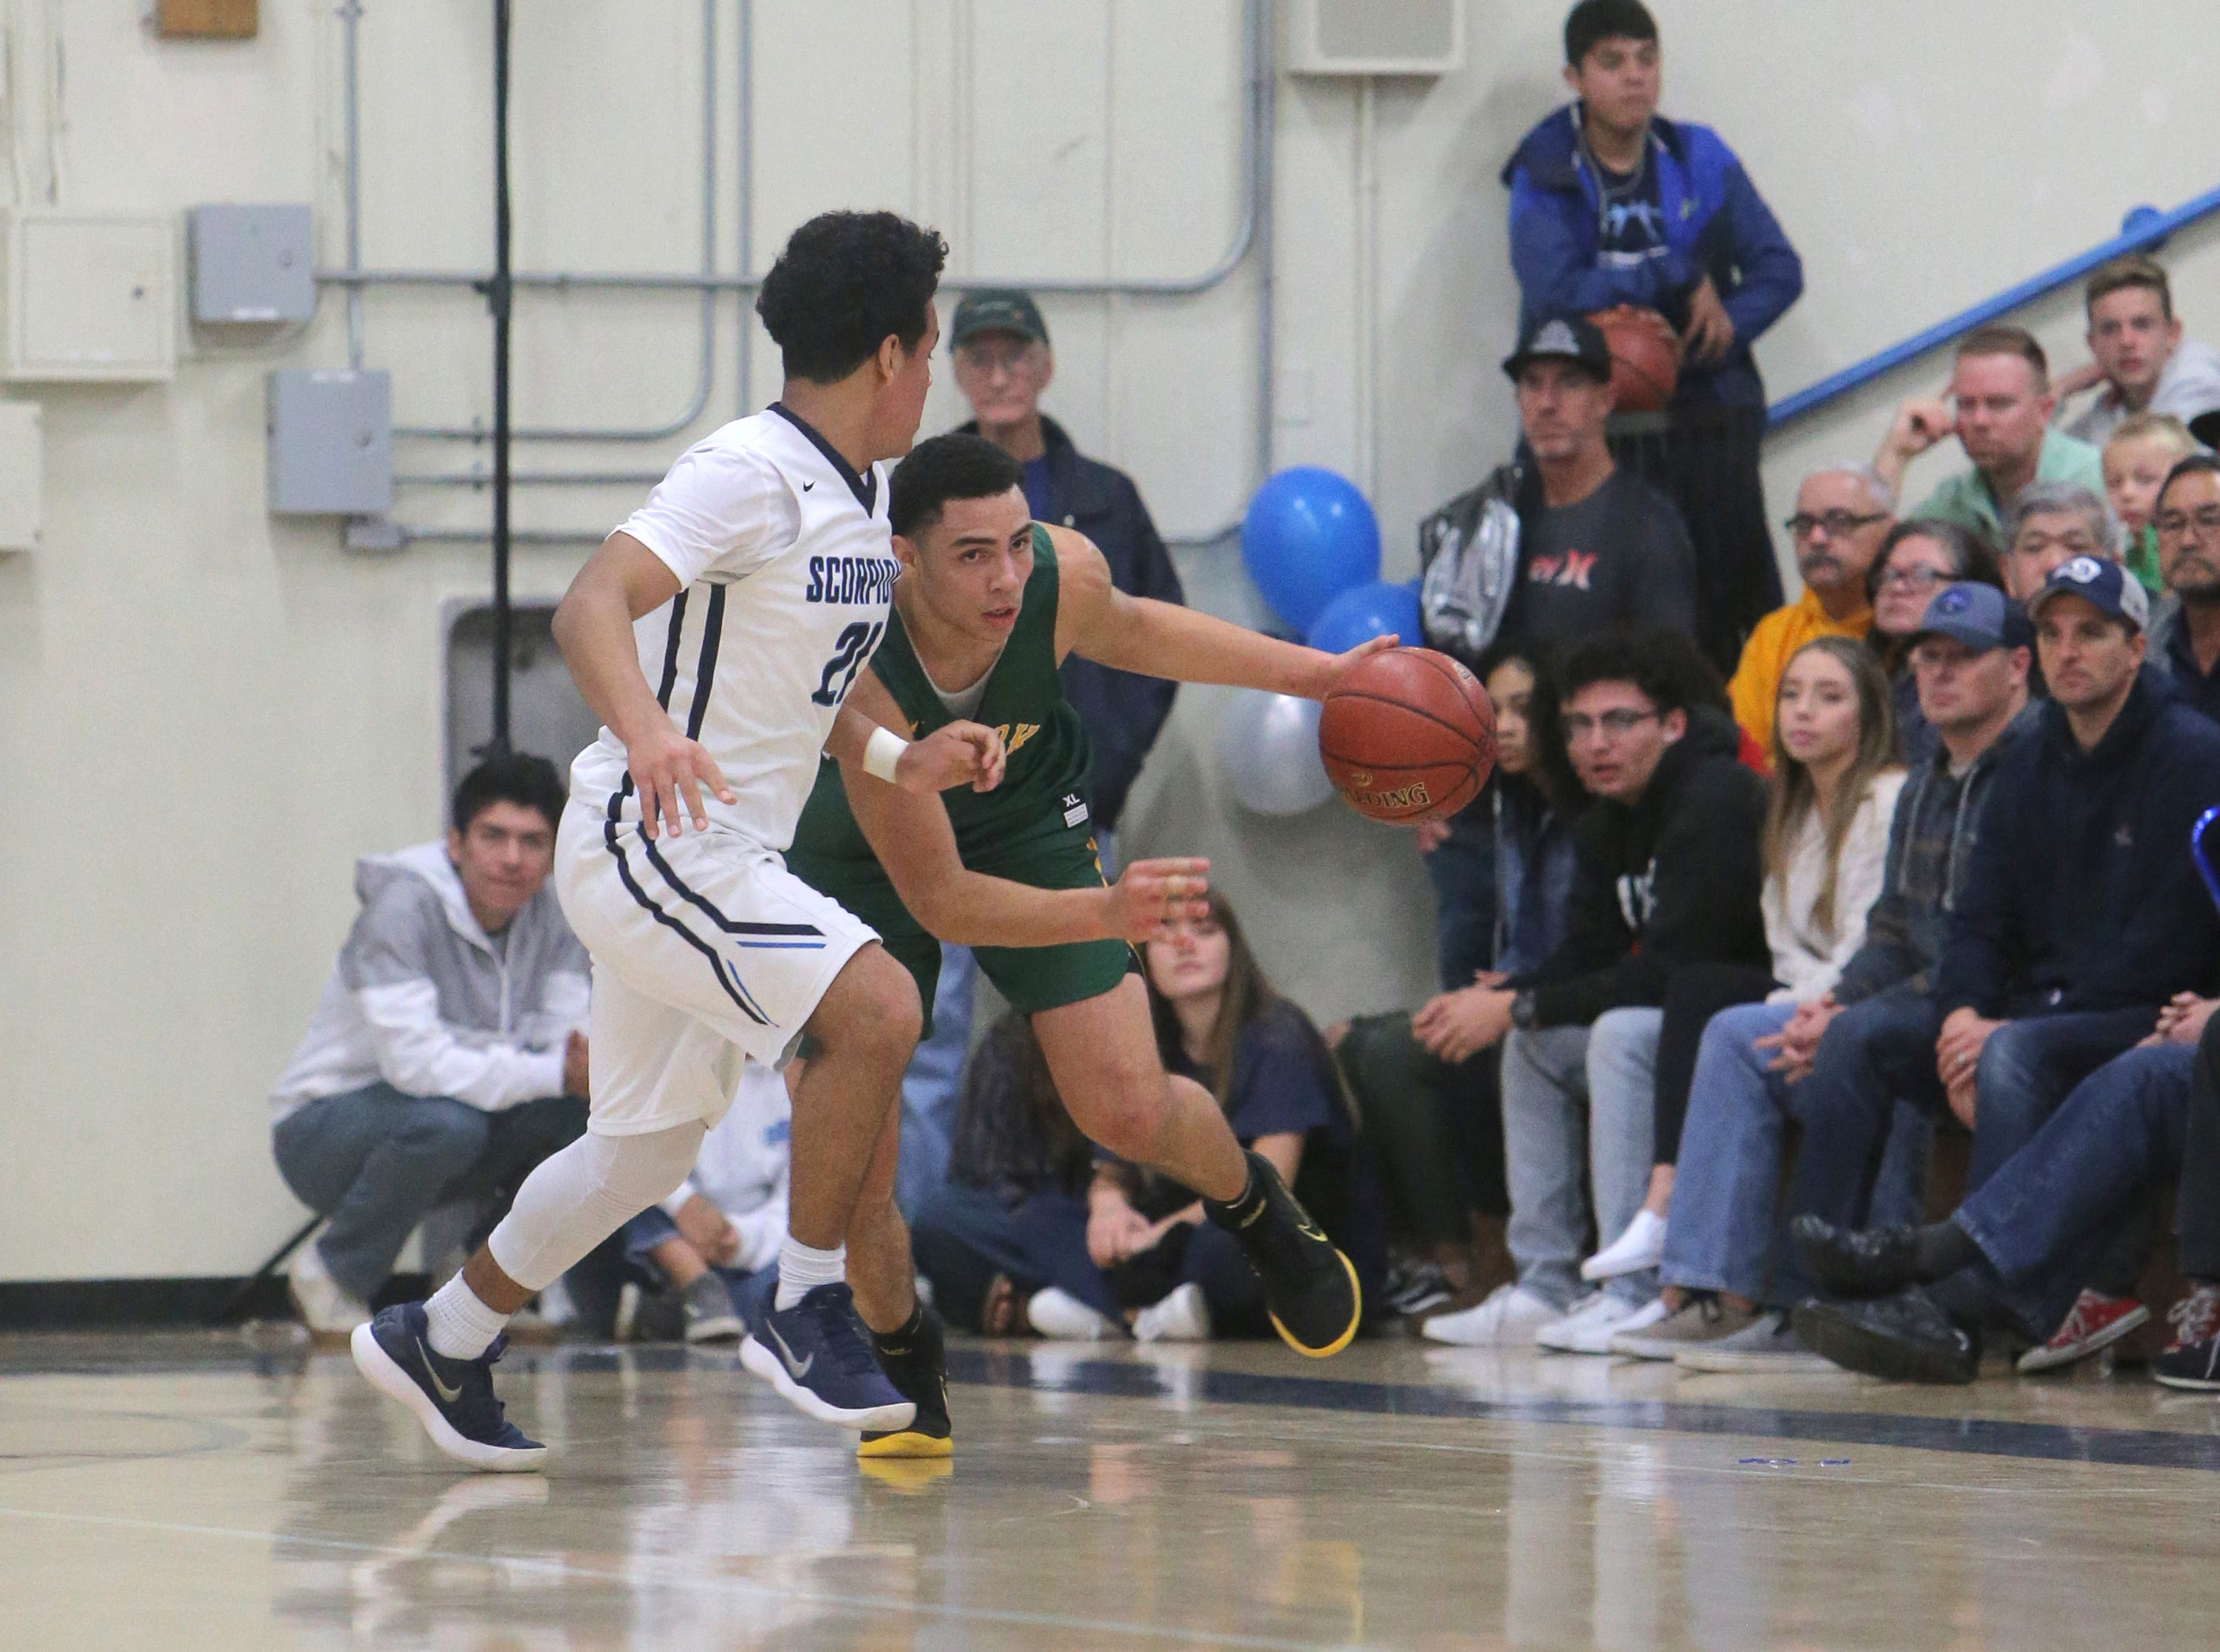 Moorpark's Drake London is closely guarded by Camarillo's Carter Alexander during Friday night's Coastal Canyon League game at Camarillo High. London scored 34 points in a 82-68 loss.